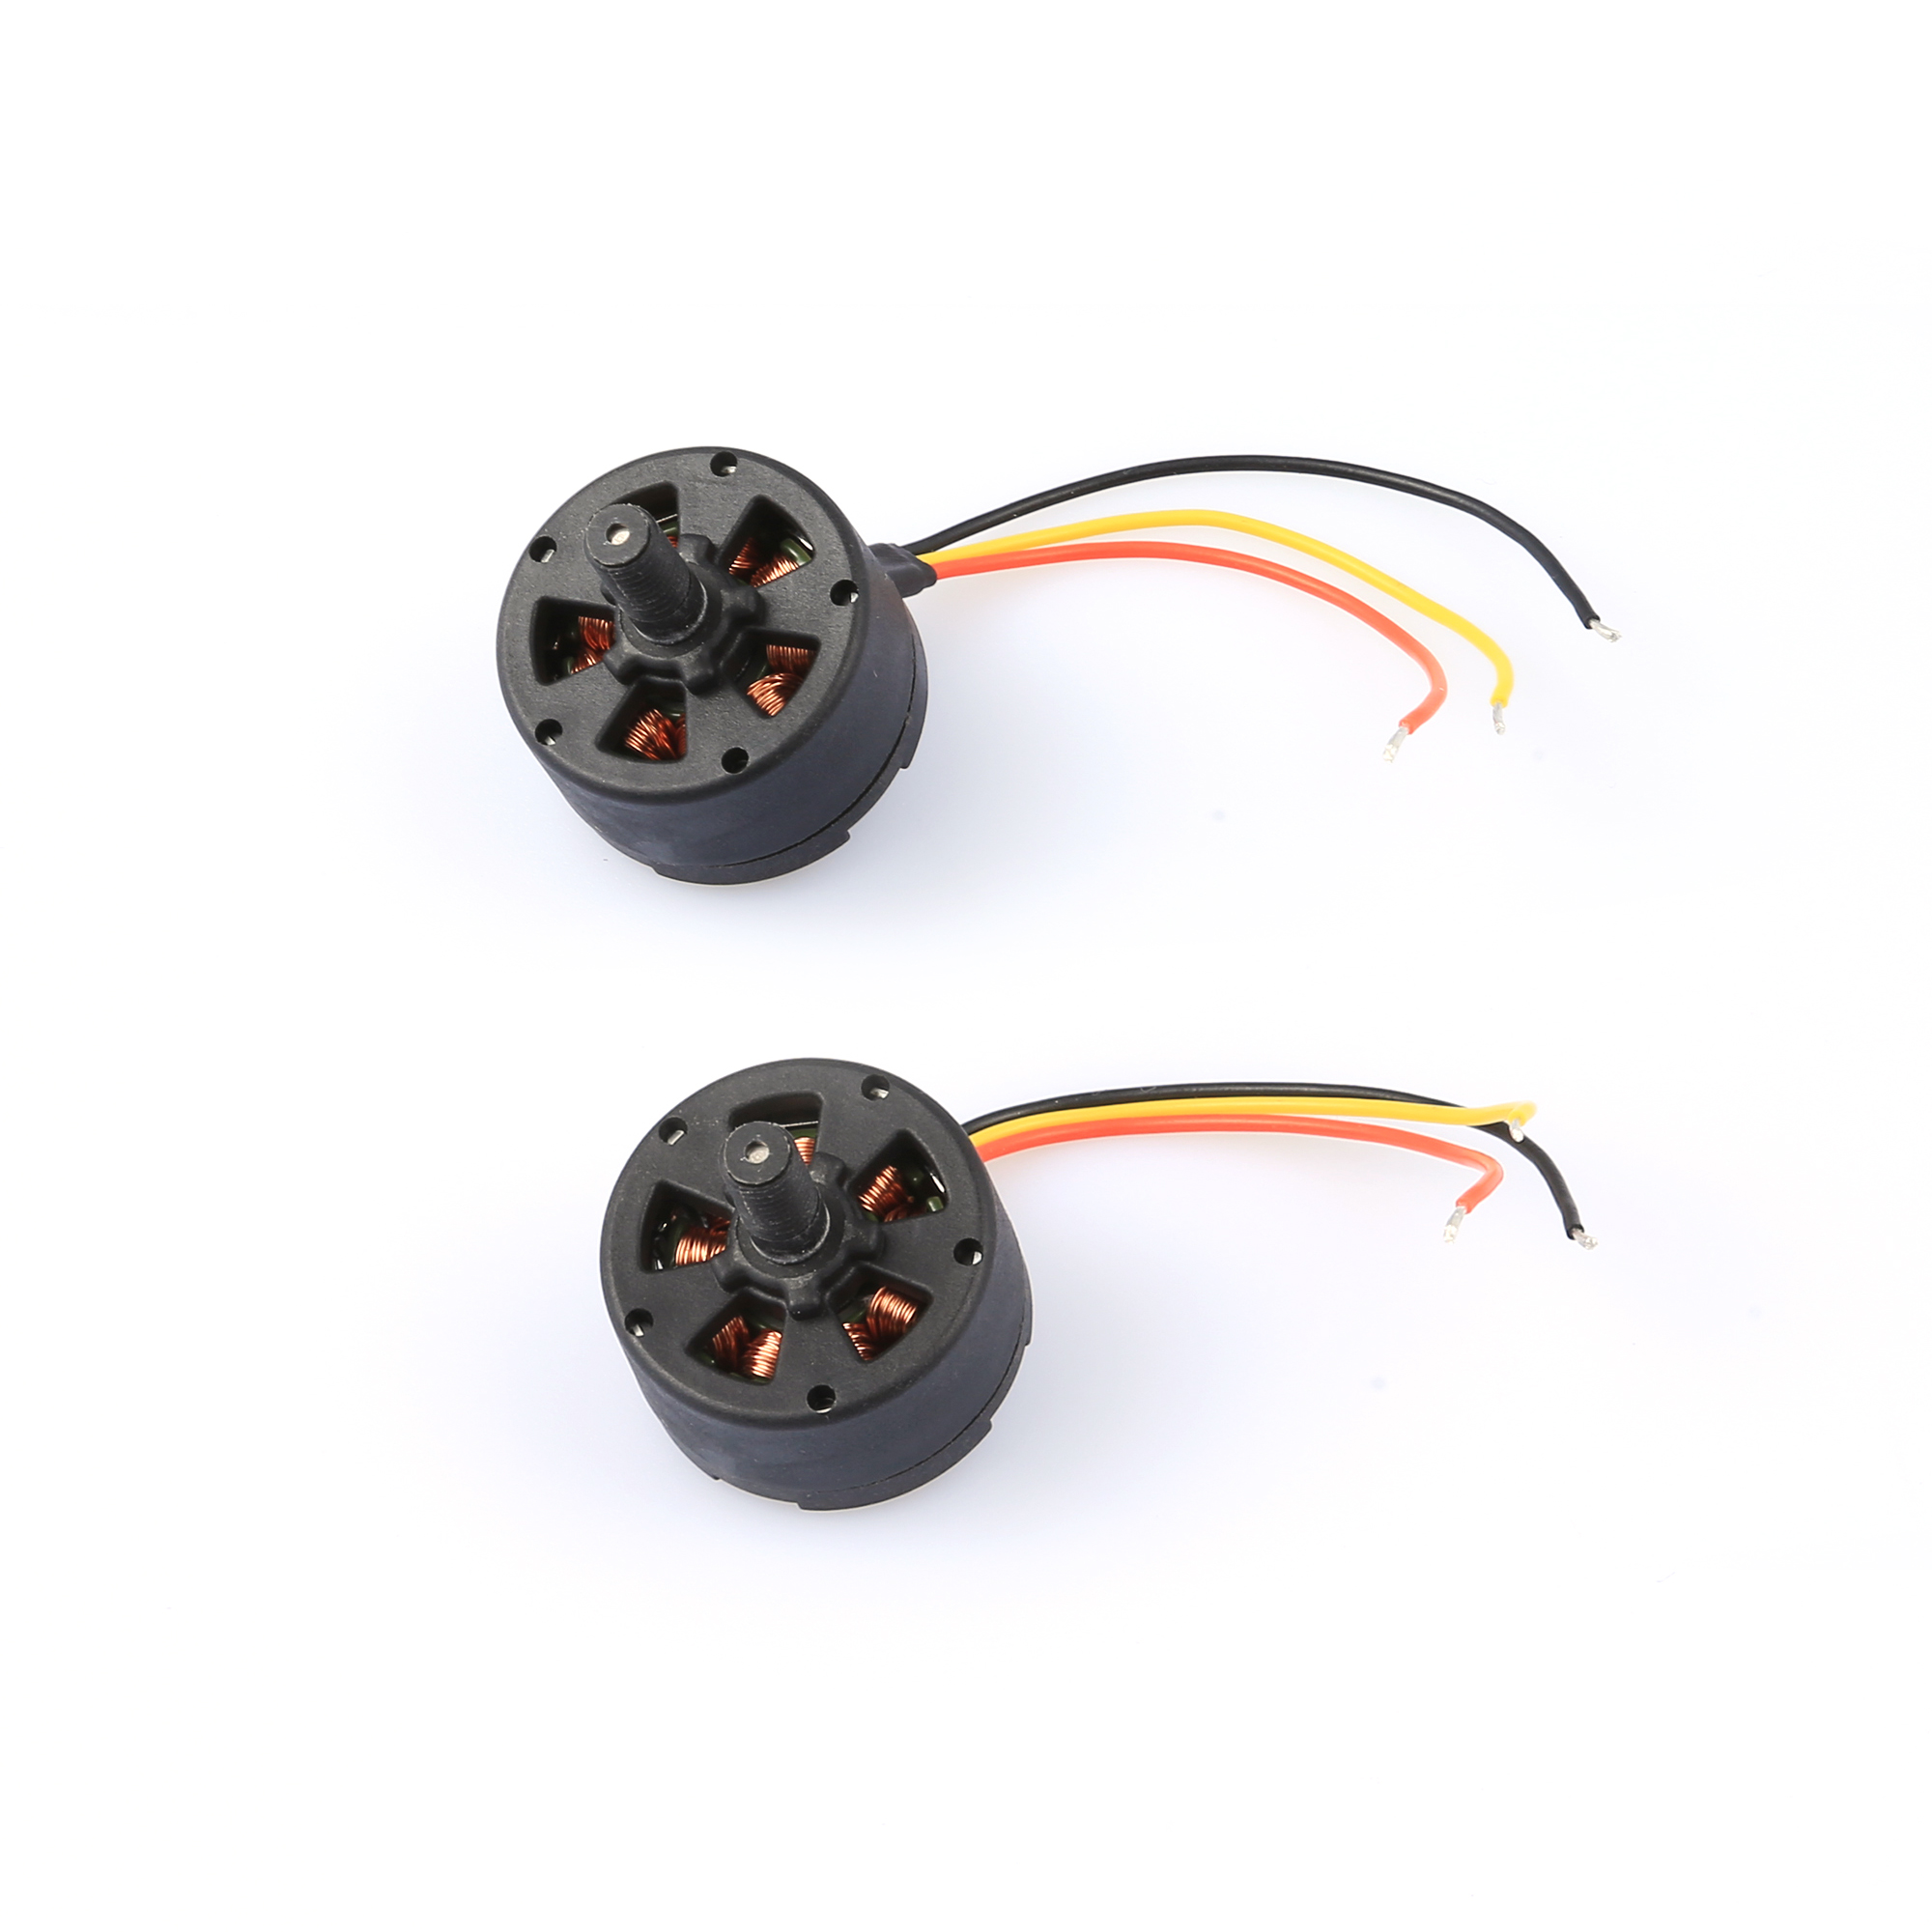 value pack H501S E (2 x motor B)